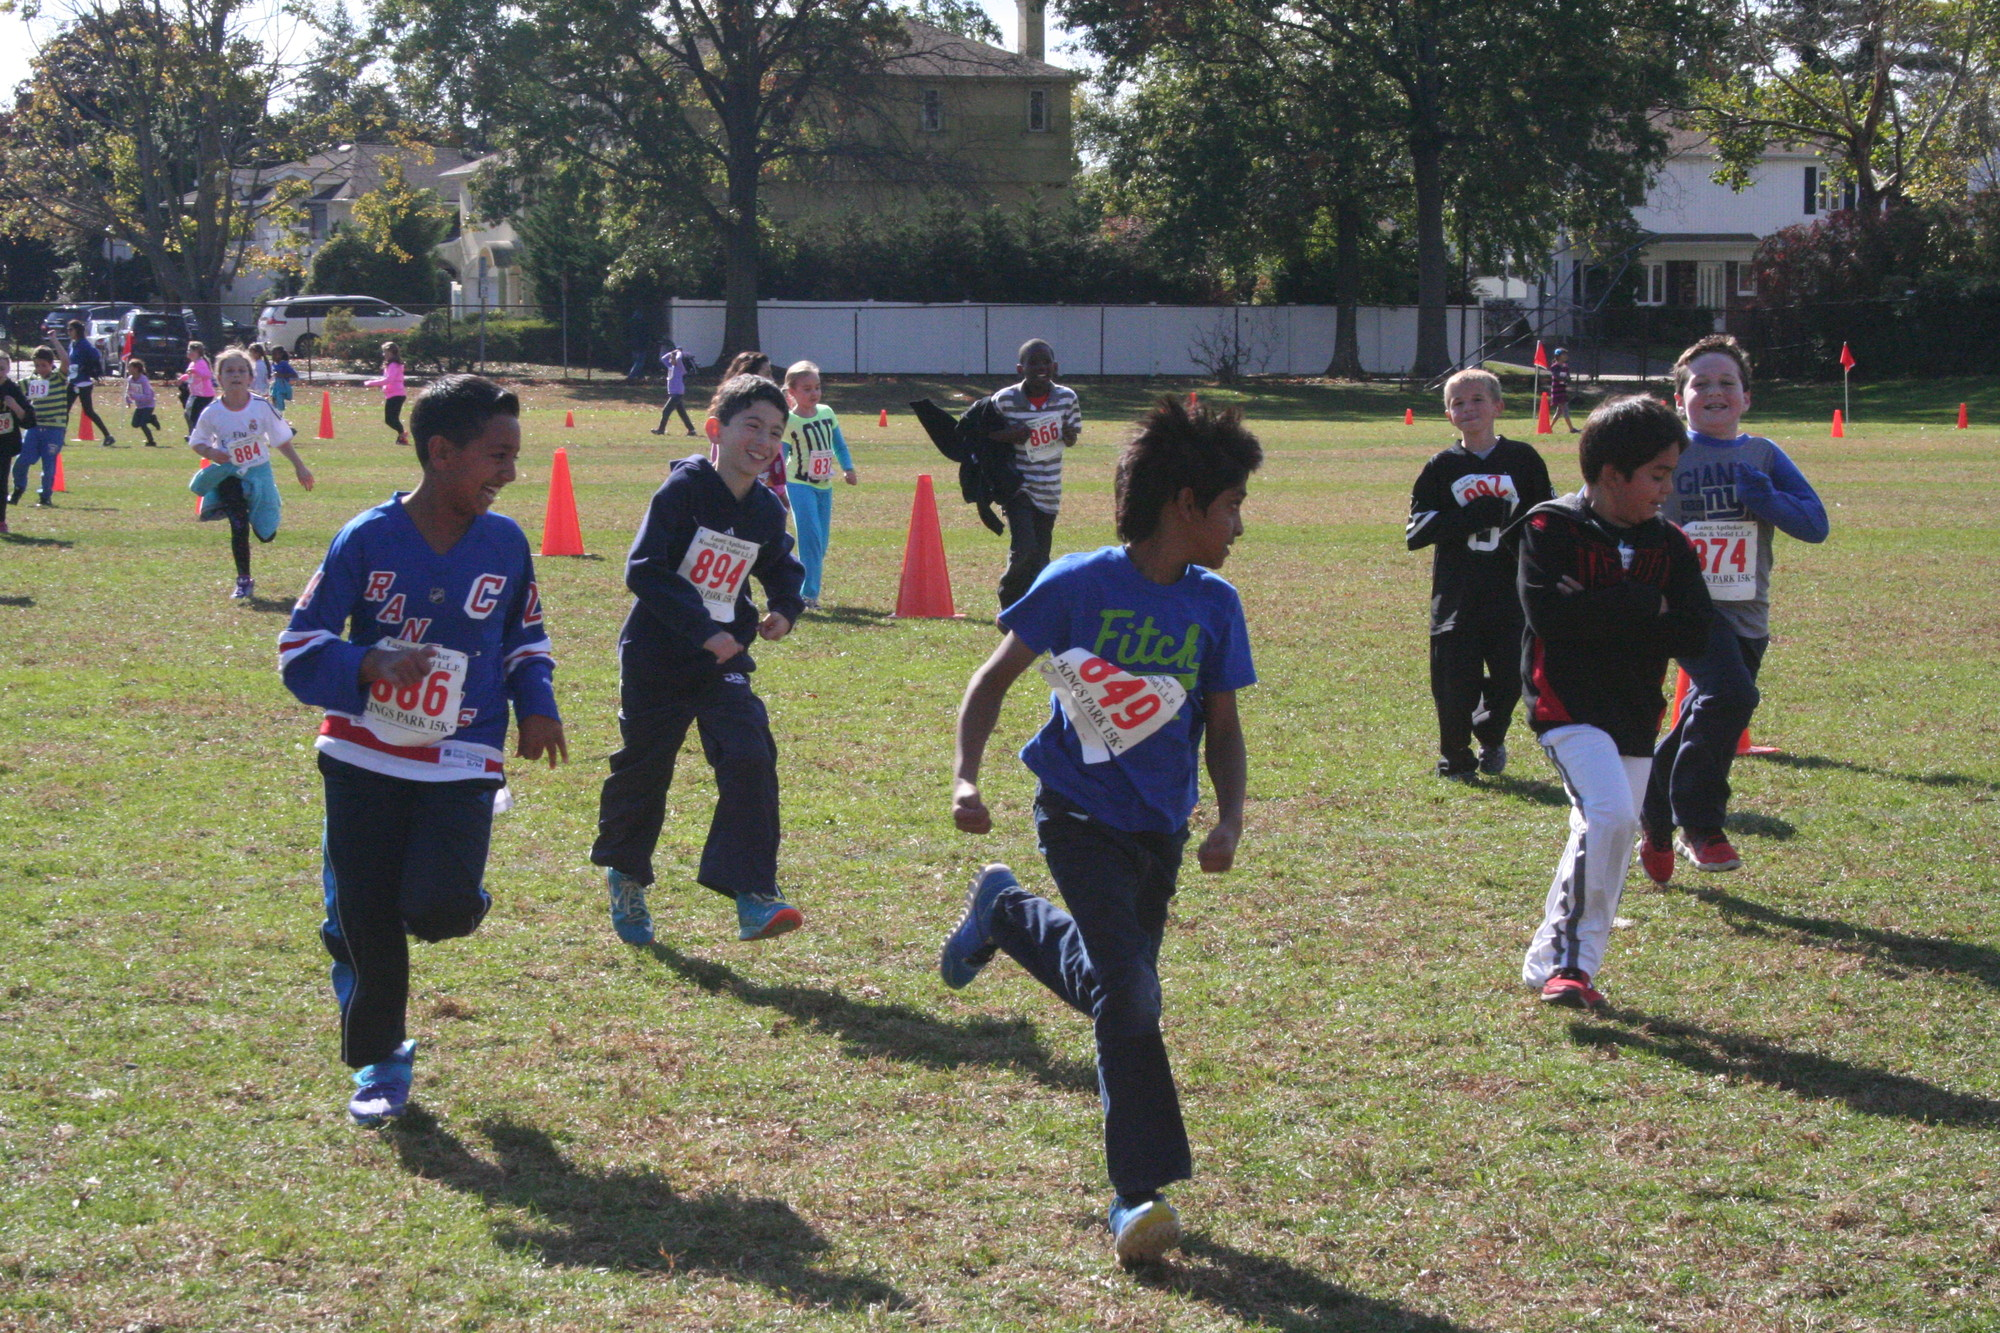 A group of fourth grade boys run together at Ogden Elementary School